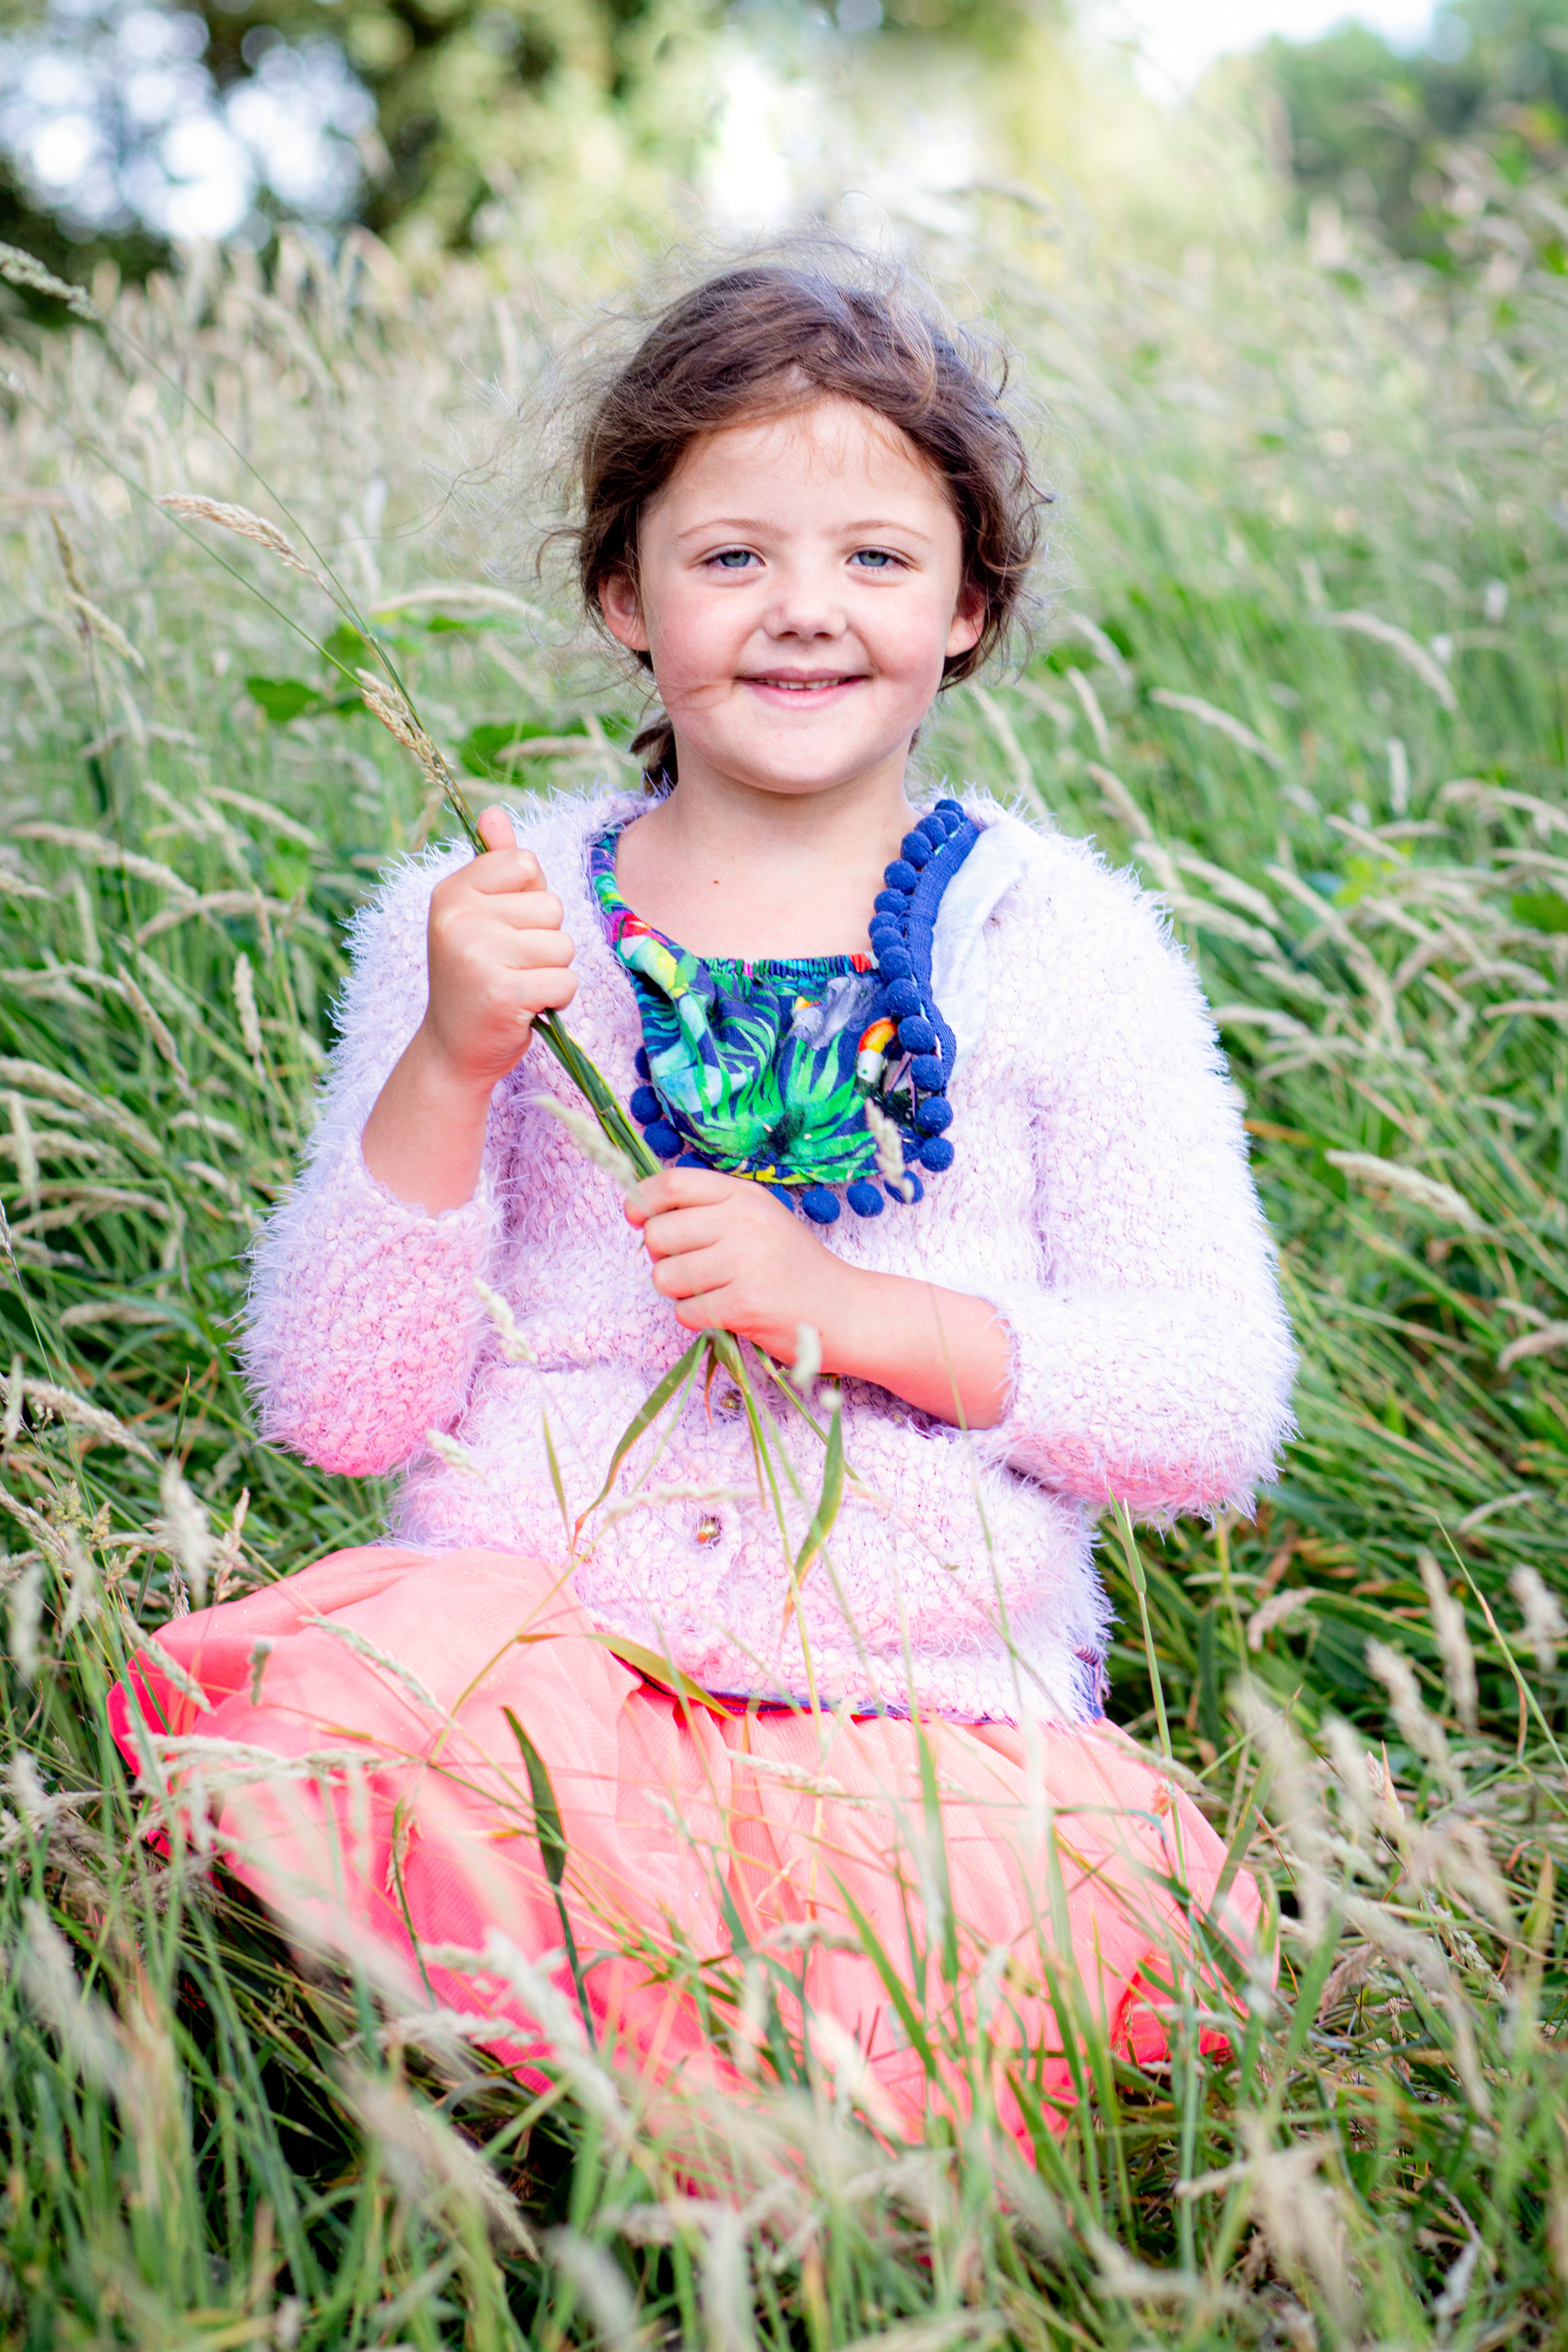 child excitedly holds grasses as she poses for a swansea photographer